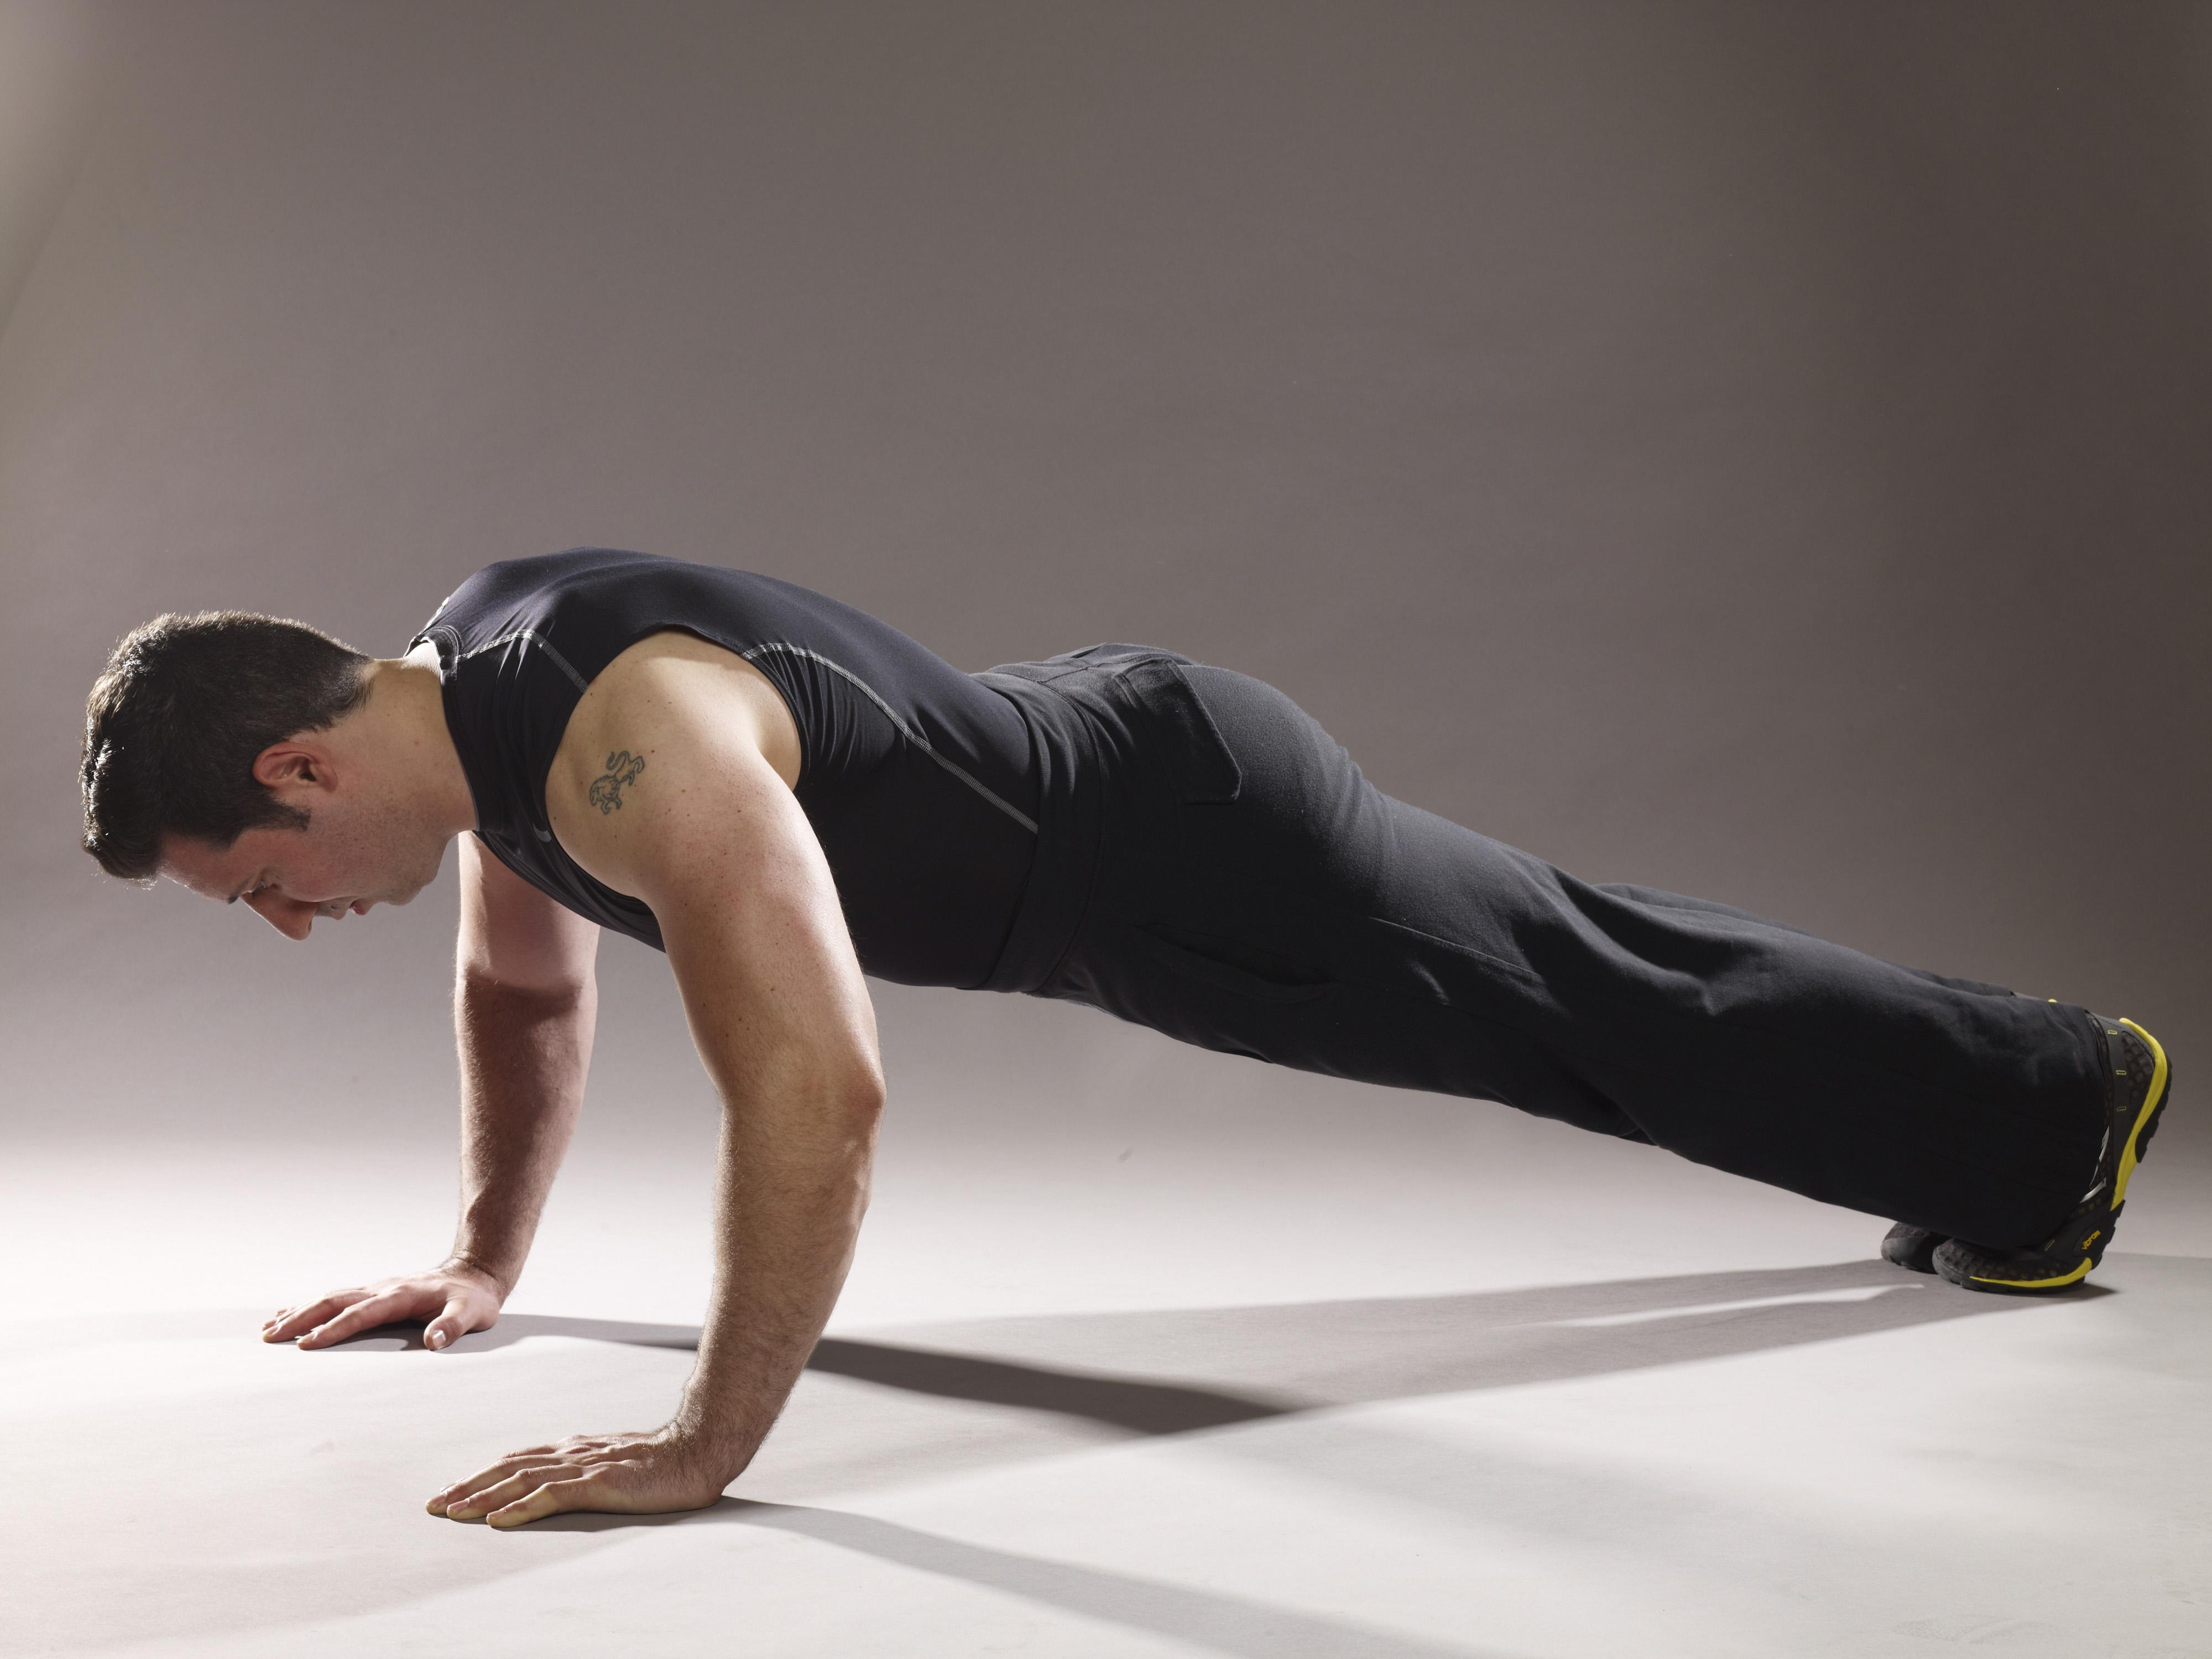 How to Properly Progress Your Clients' Push-up